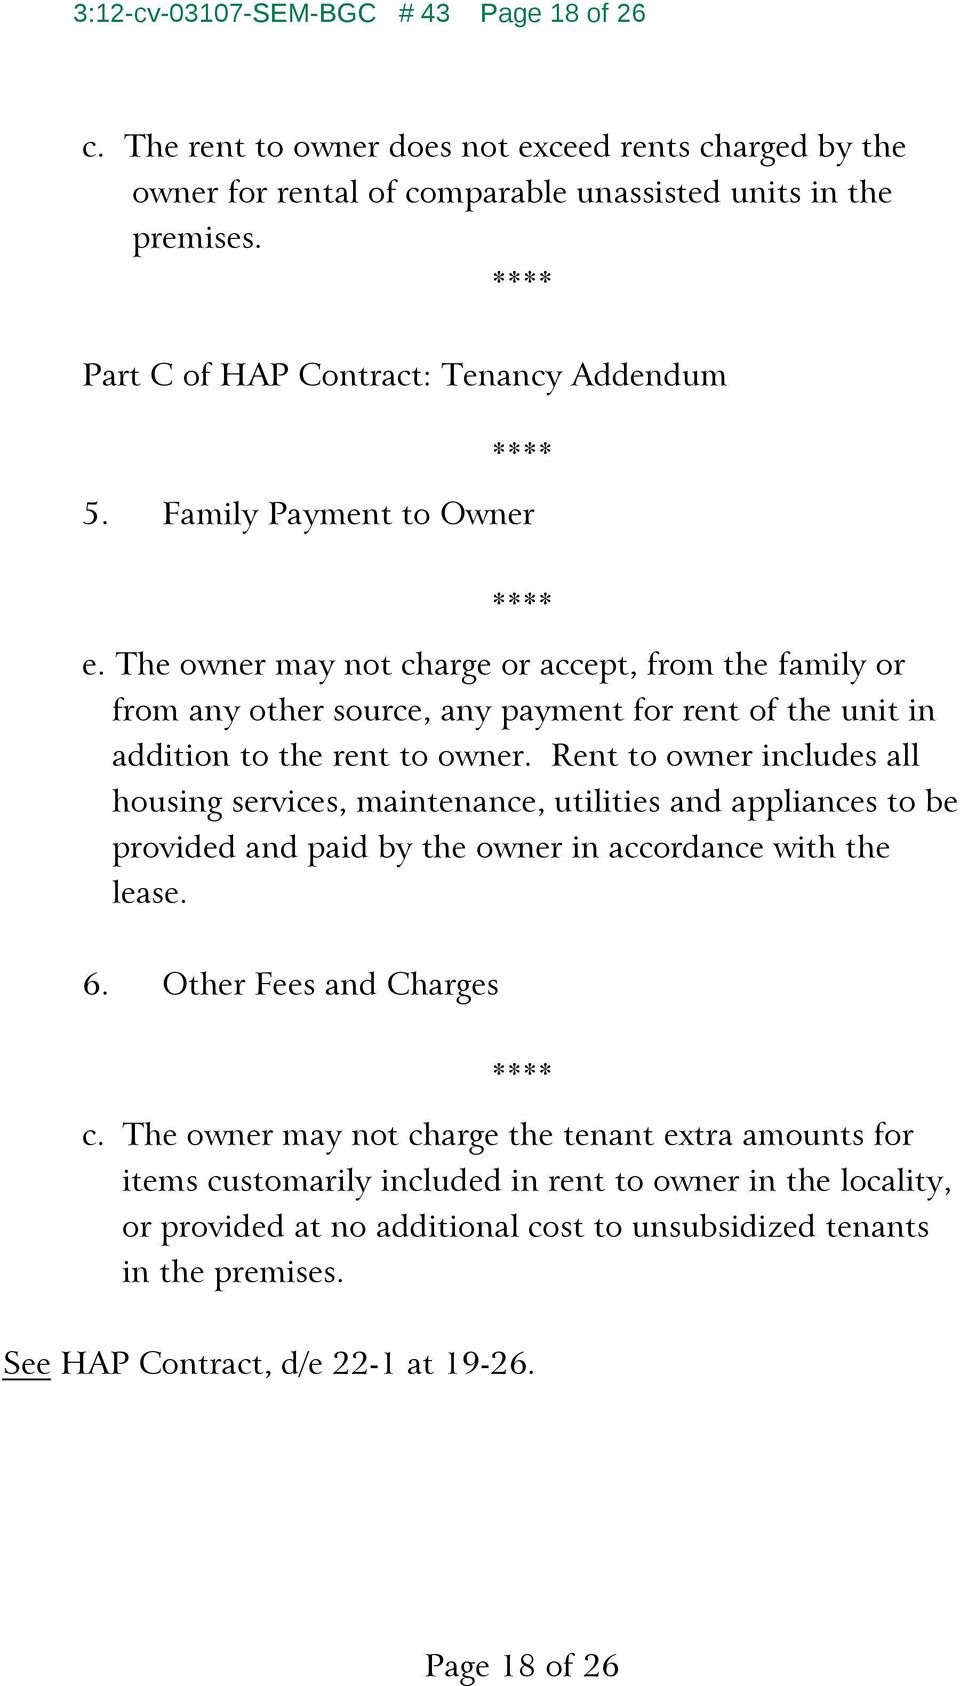 The owner may not charge or accept, from the family or from any other source, any payment for rent of the unit in addition to the rent to owner.